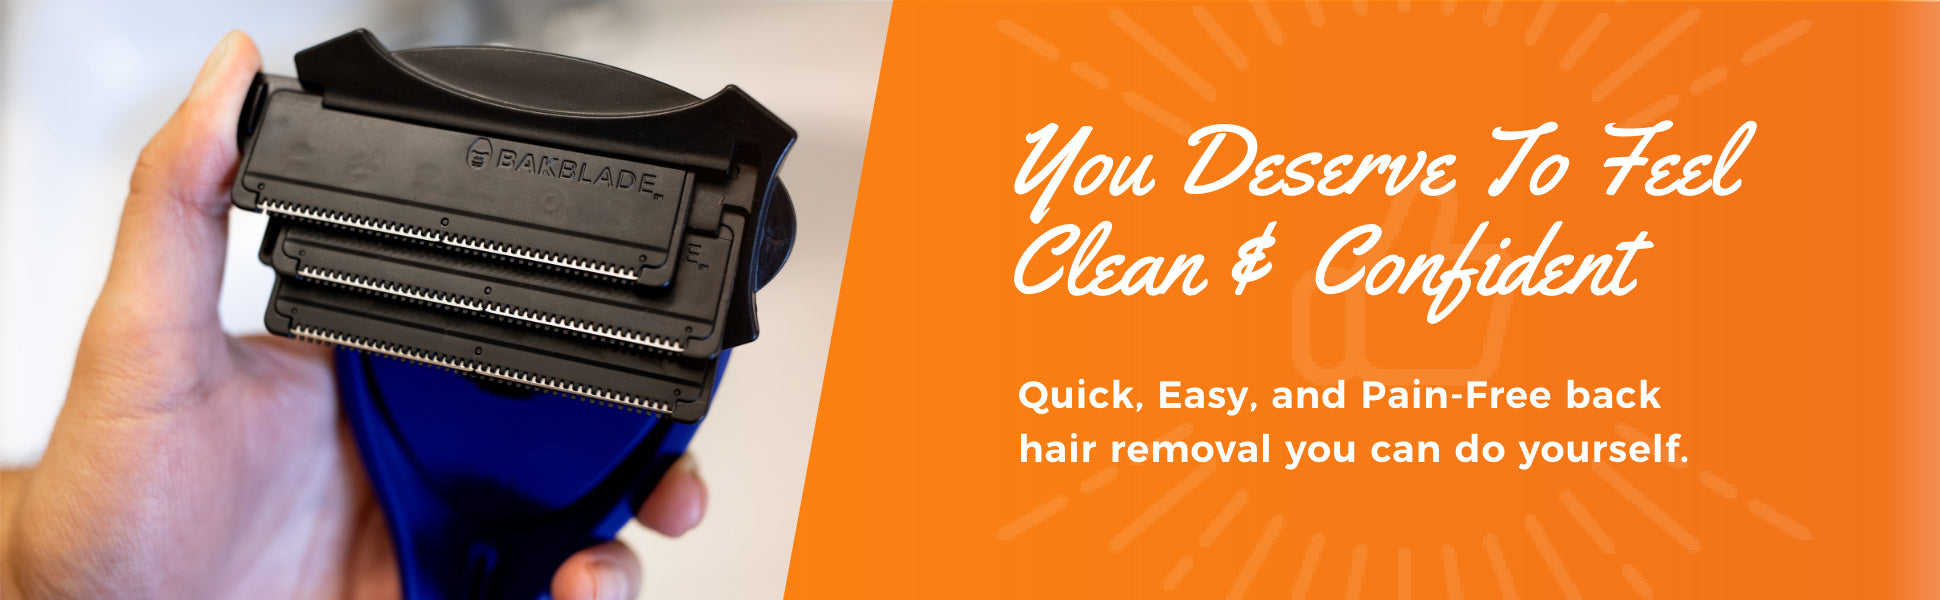 You deserve to feel clean and confident. Quick, easy, pain-free body hair grooming for easy to reach places.